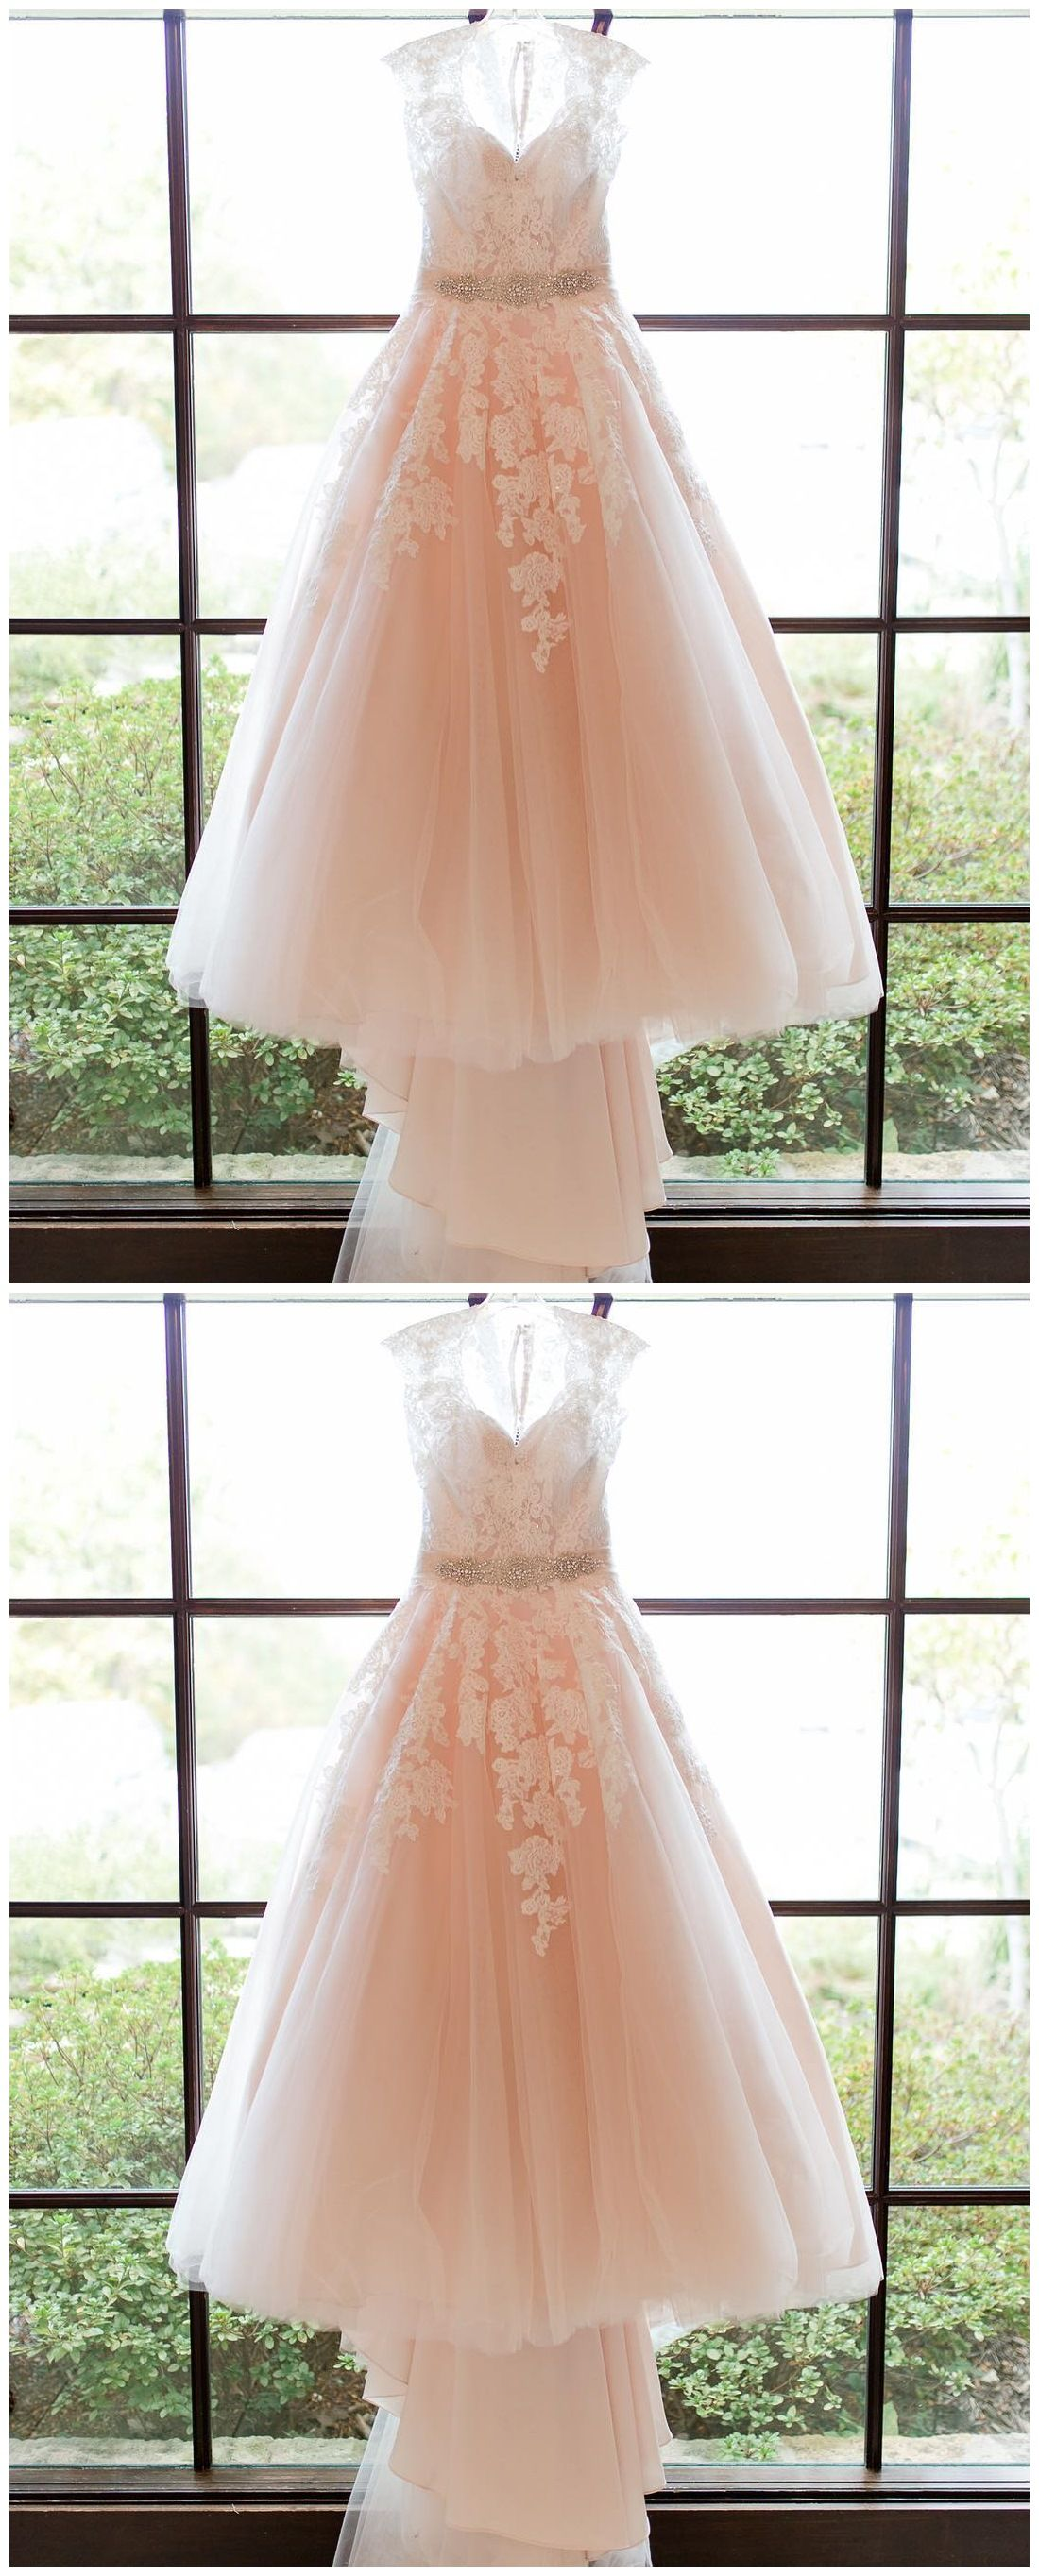 Lace applique blush pink wedding dresses cheap bridal dress ard